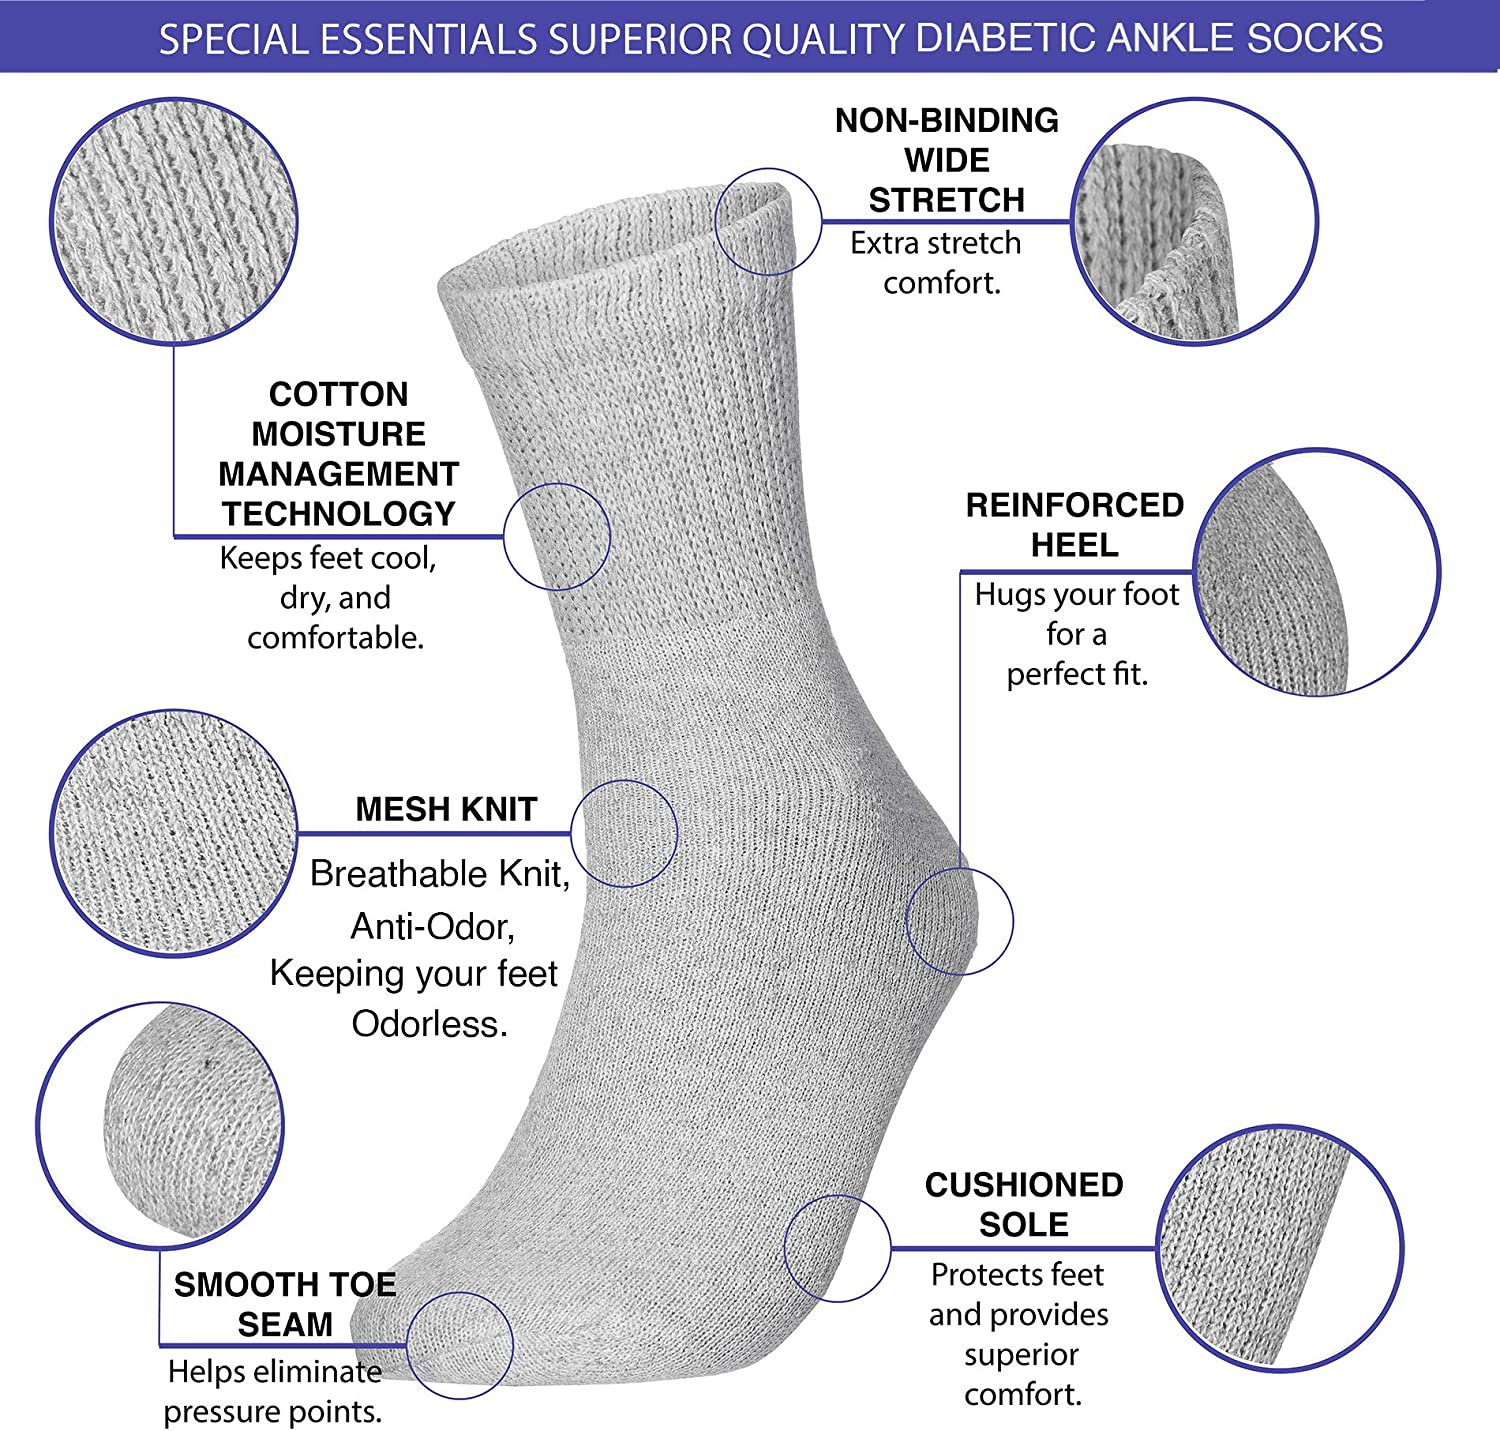 Special Essentials 6 Pairs Men's Cotton Diabetic Ankle Socks Black Grey White (White, 10-13): Health & Personal Care